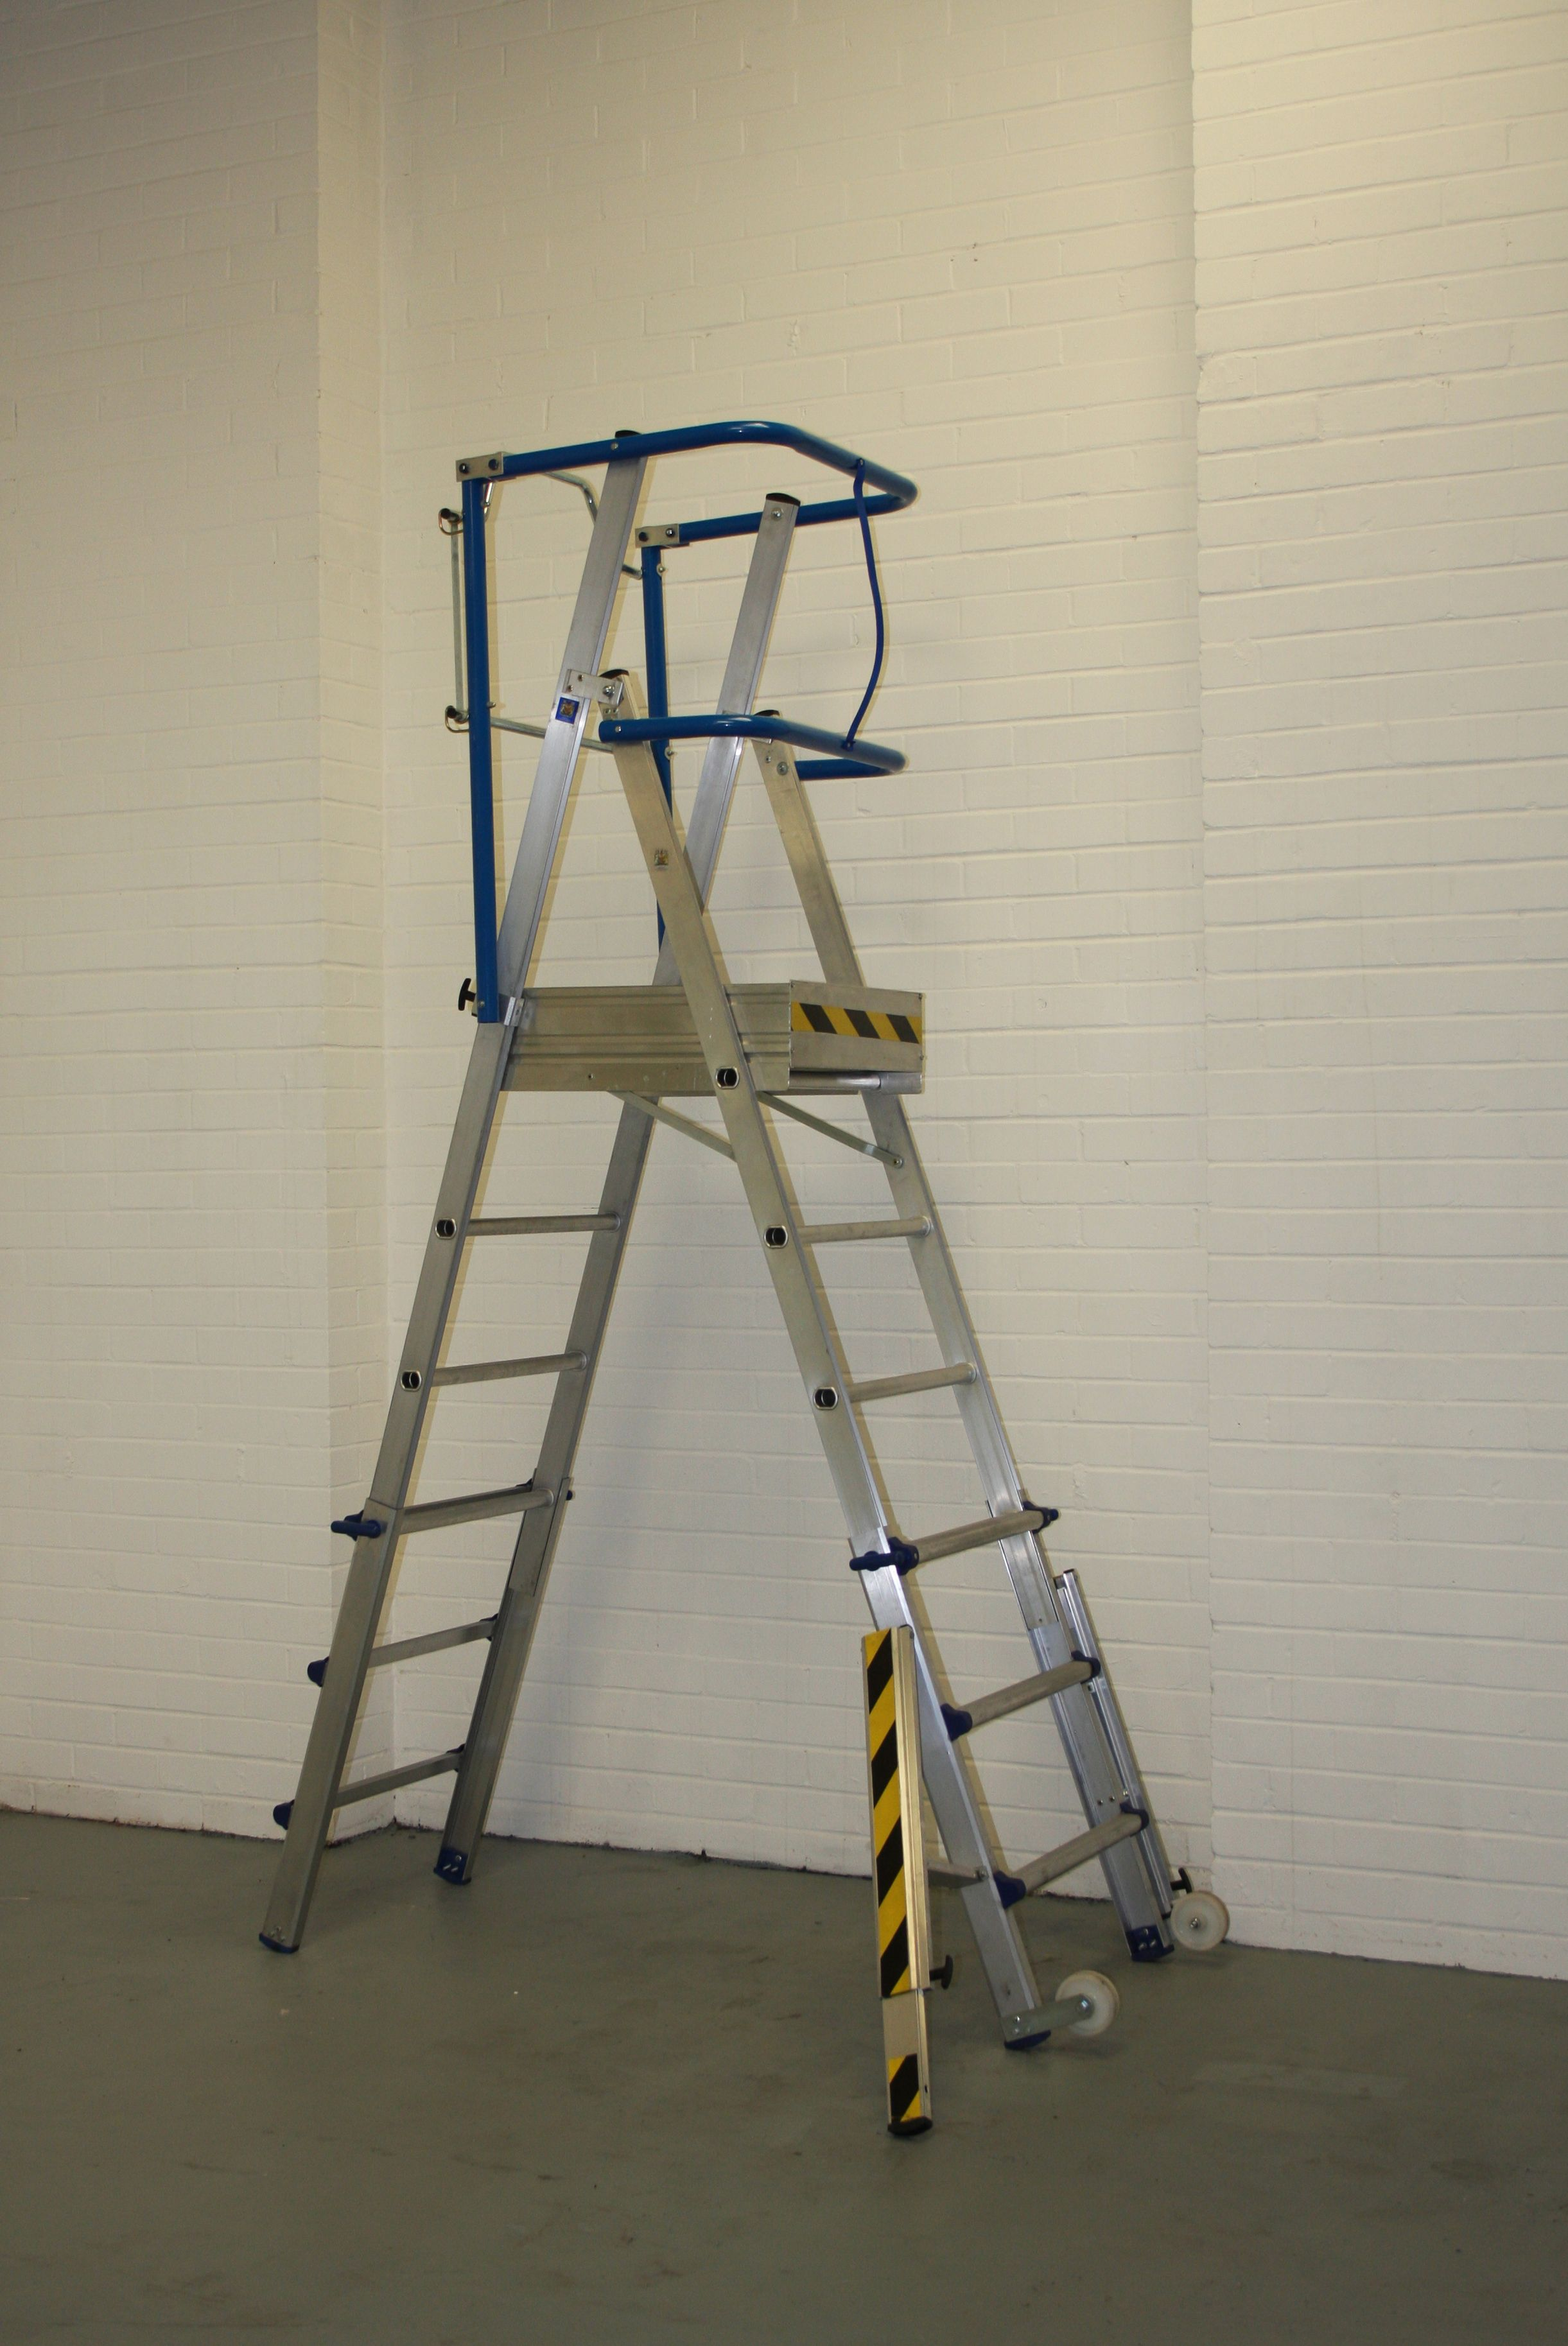 Clow Adjustable Magic Platform Ladder Platform Ladder Folding Ladder